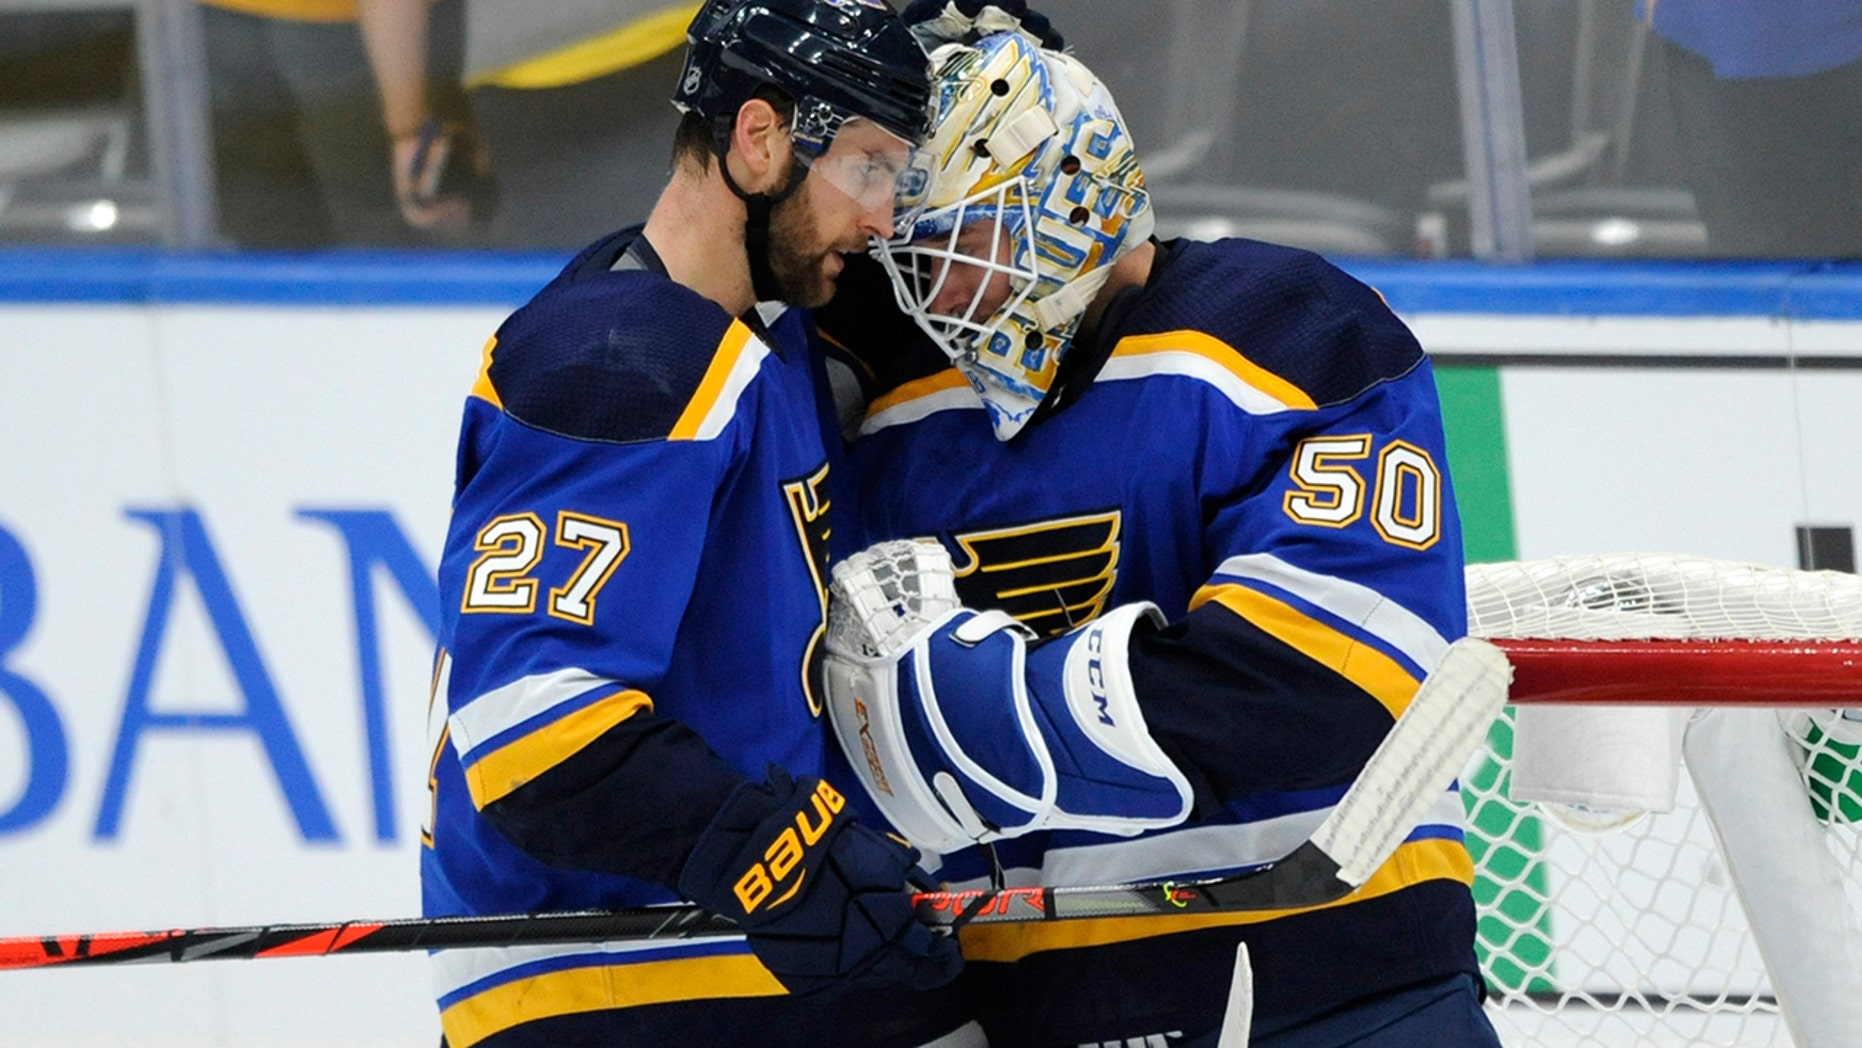 Blues Geared Up For Challenge Of Being Defending Champions Fox News